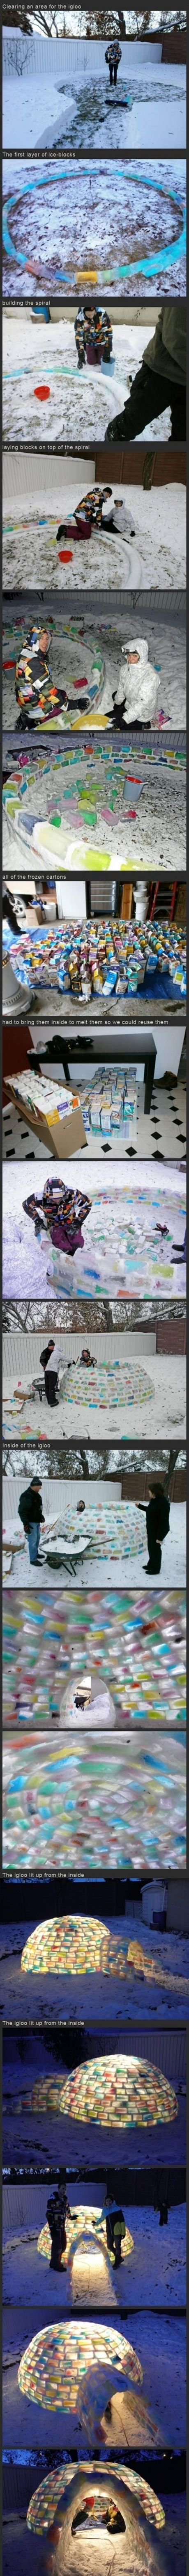 awesome homemade igloo - they really took things to the next level, lol, I like it!